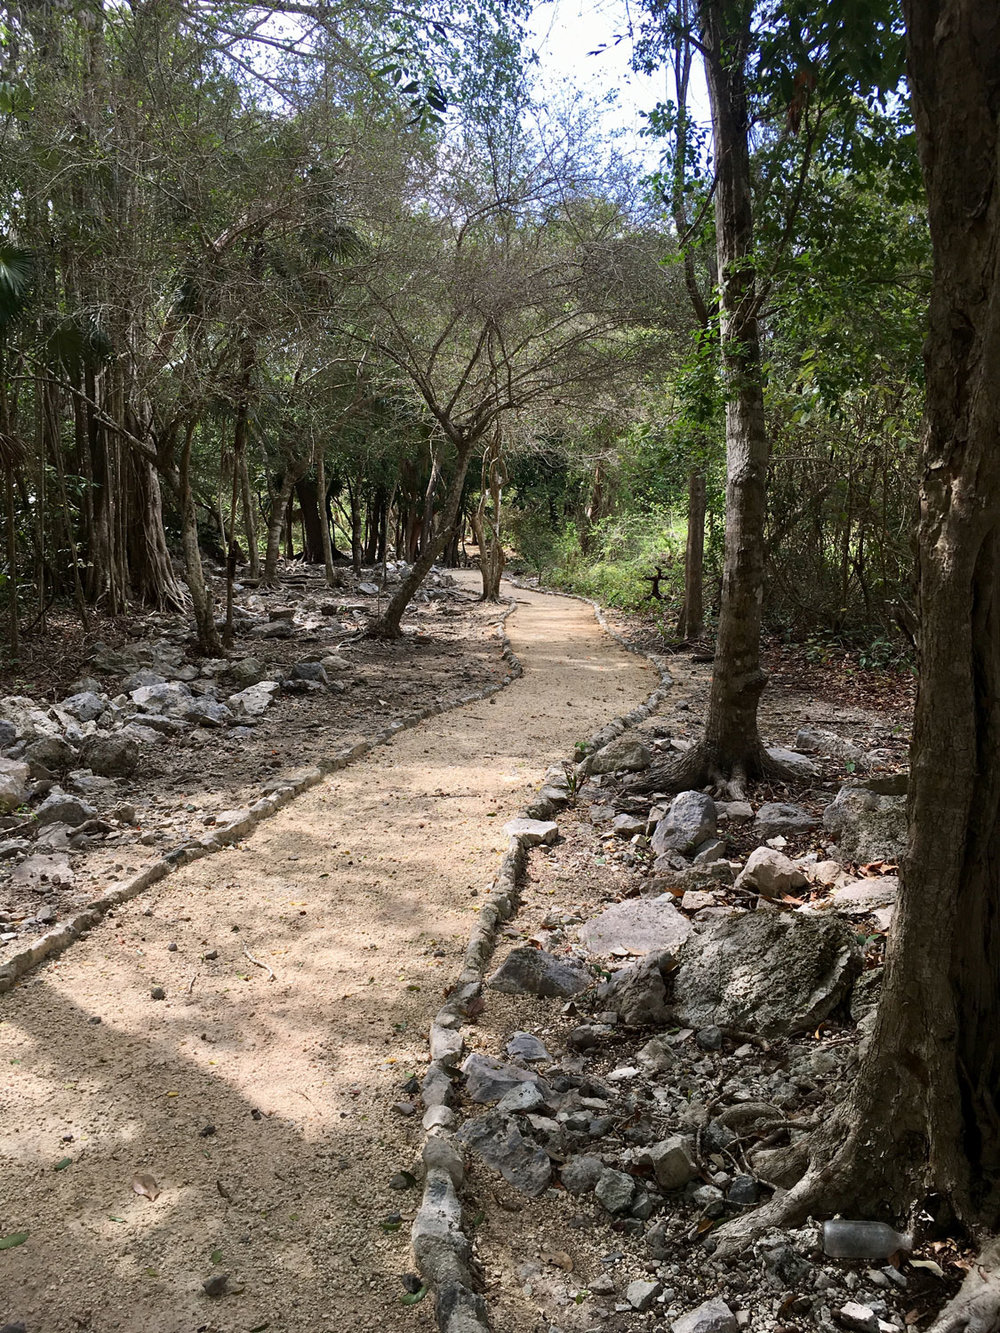 There are many modern day jungle paths between the ruin groups.